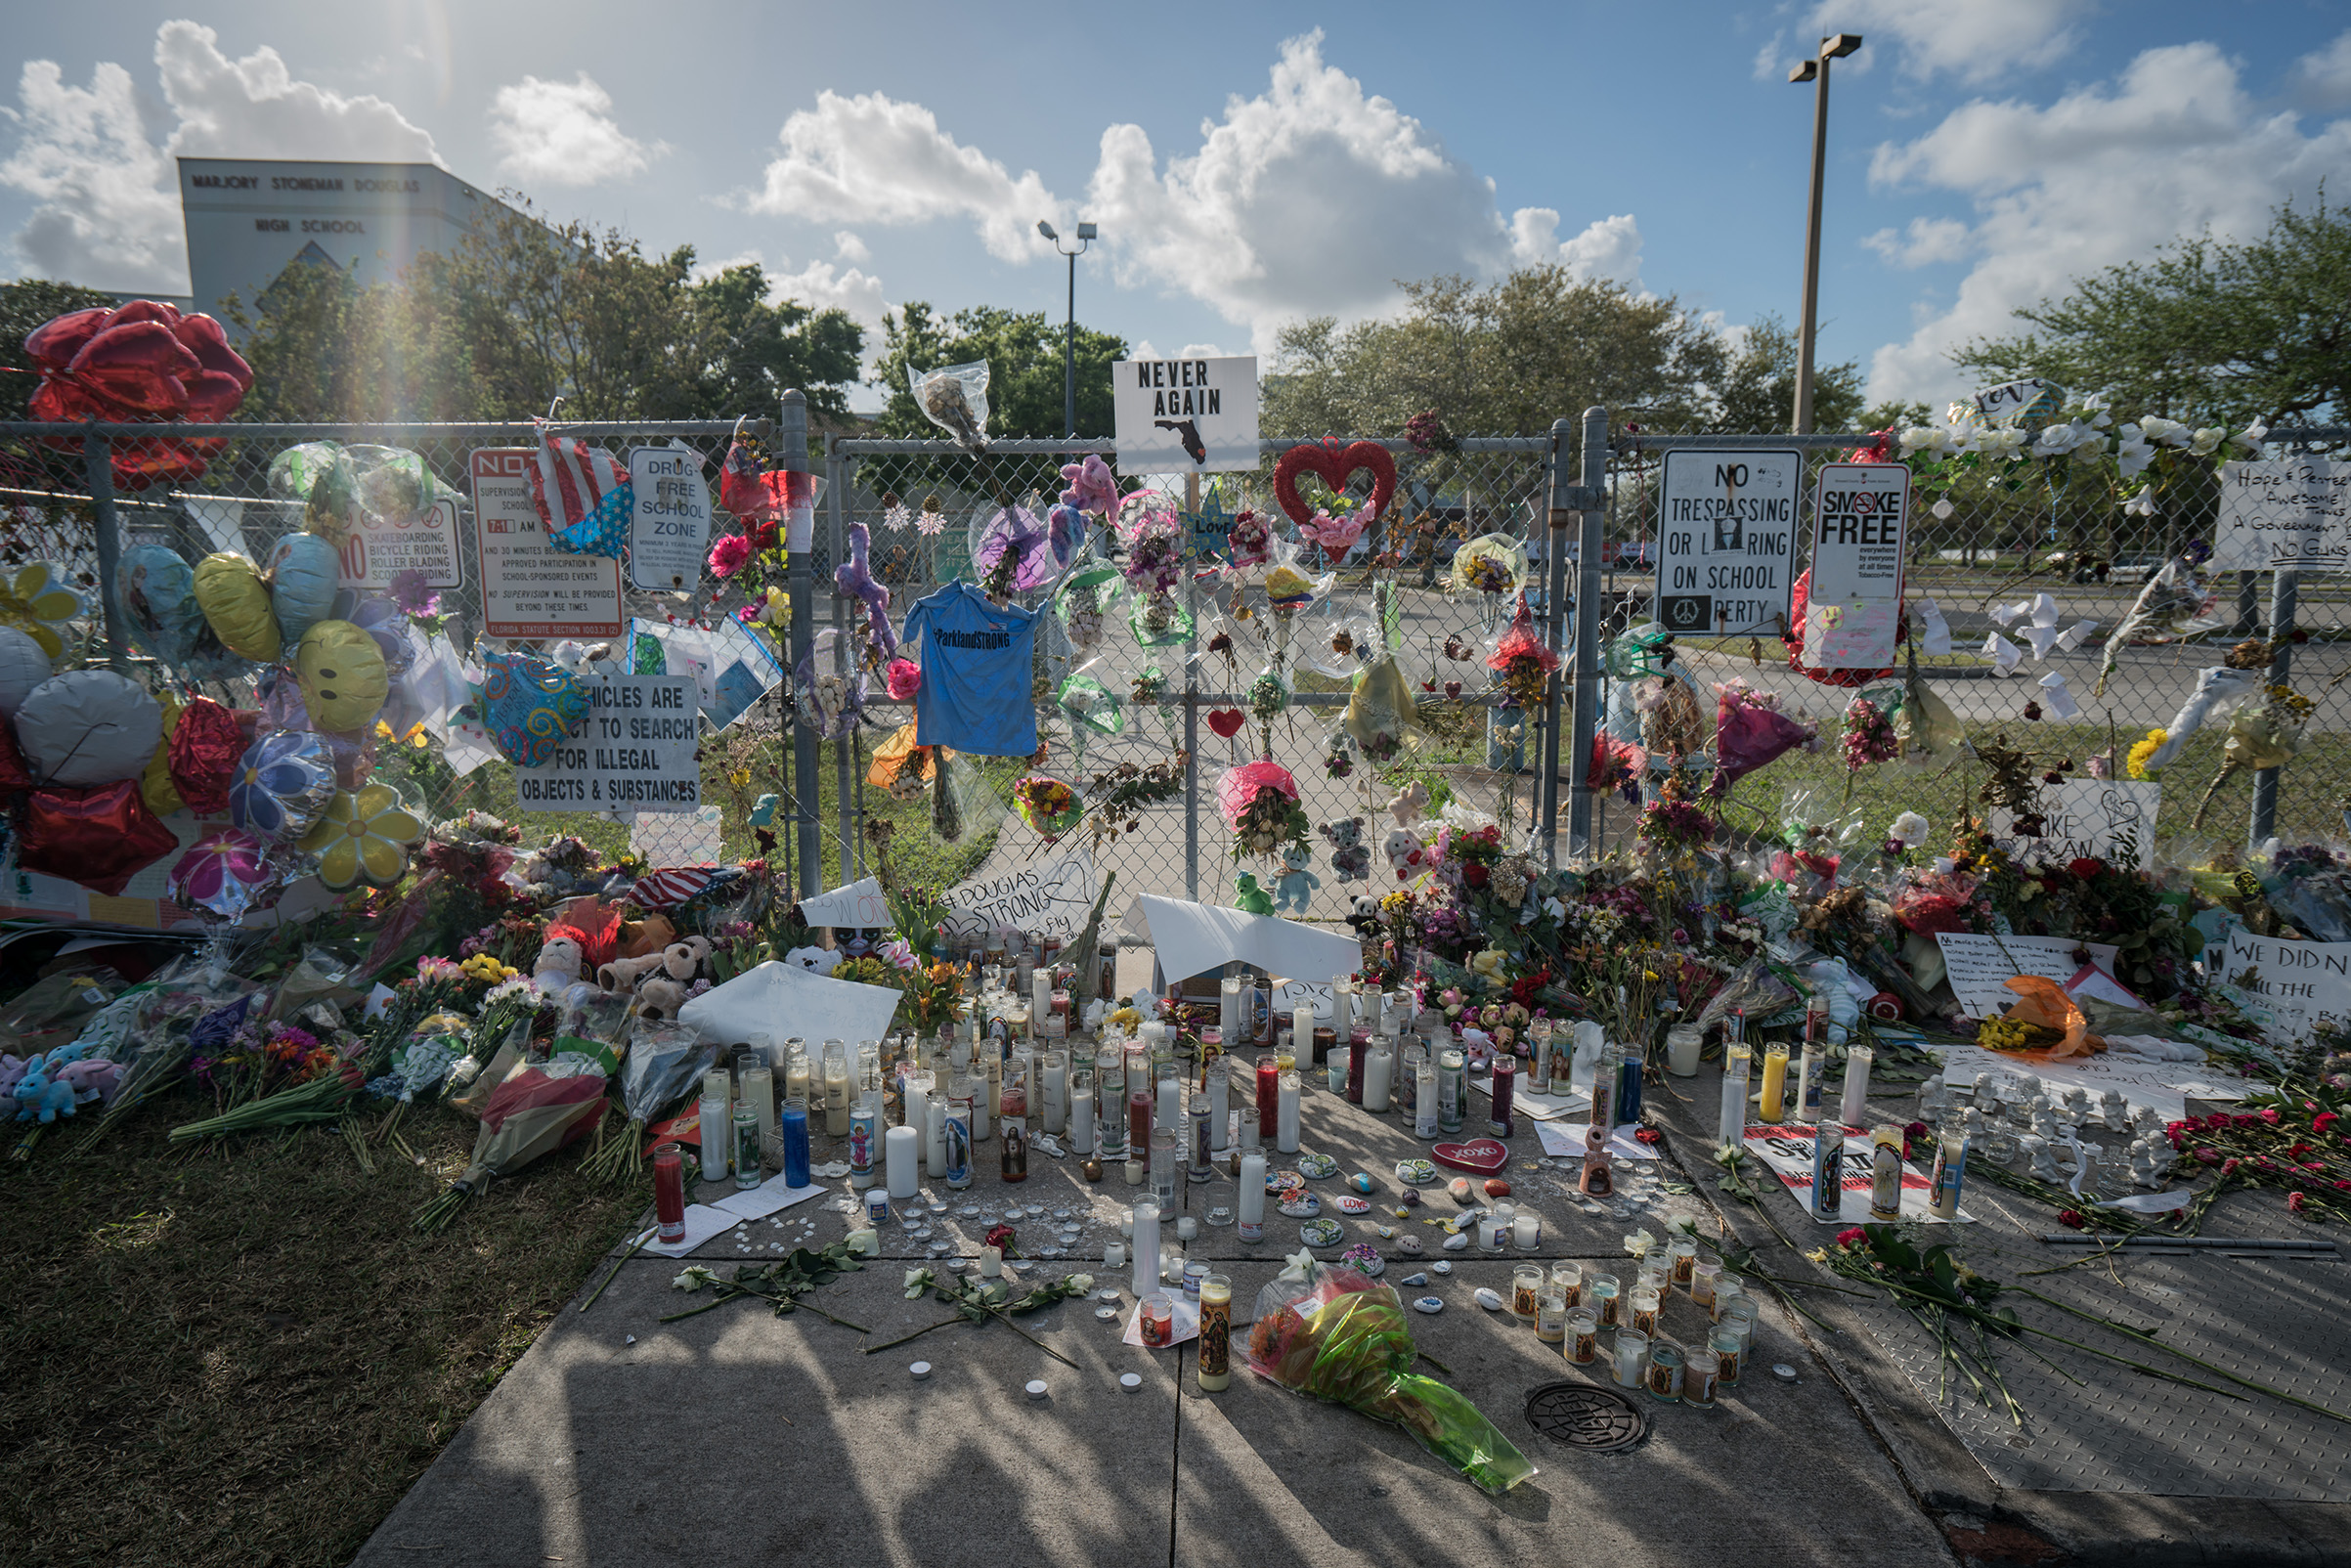 A makeshift memorial at Marjory Stoneman Douglas High School in Parkland, Fla. on Feb. 25, 2018.